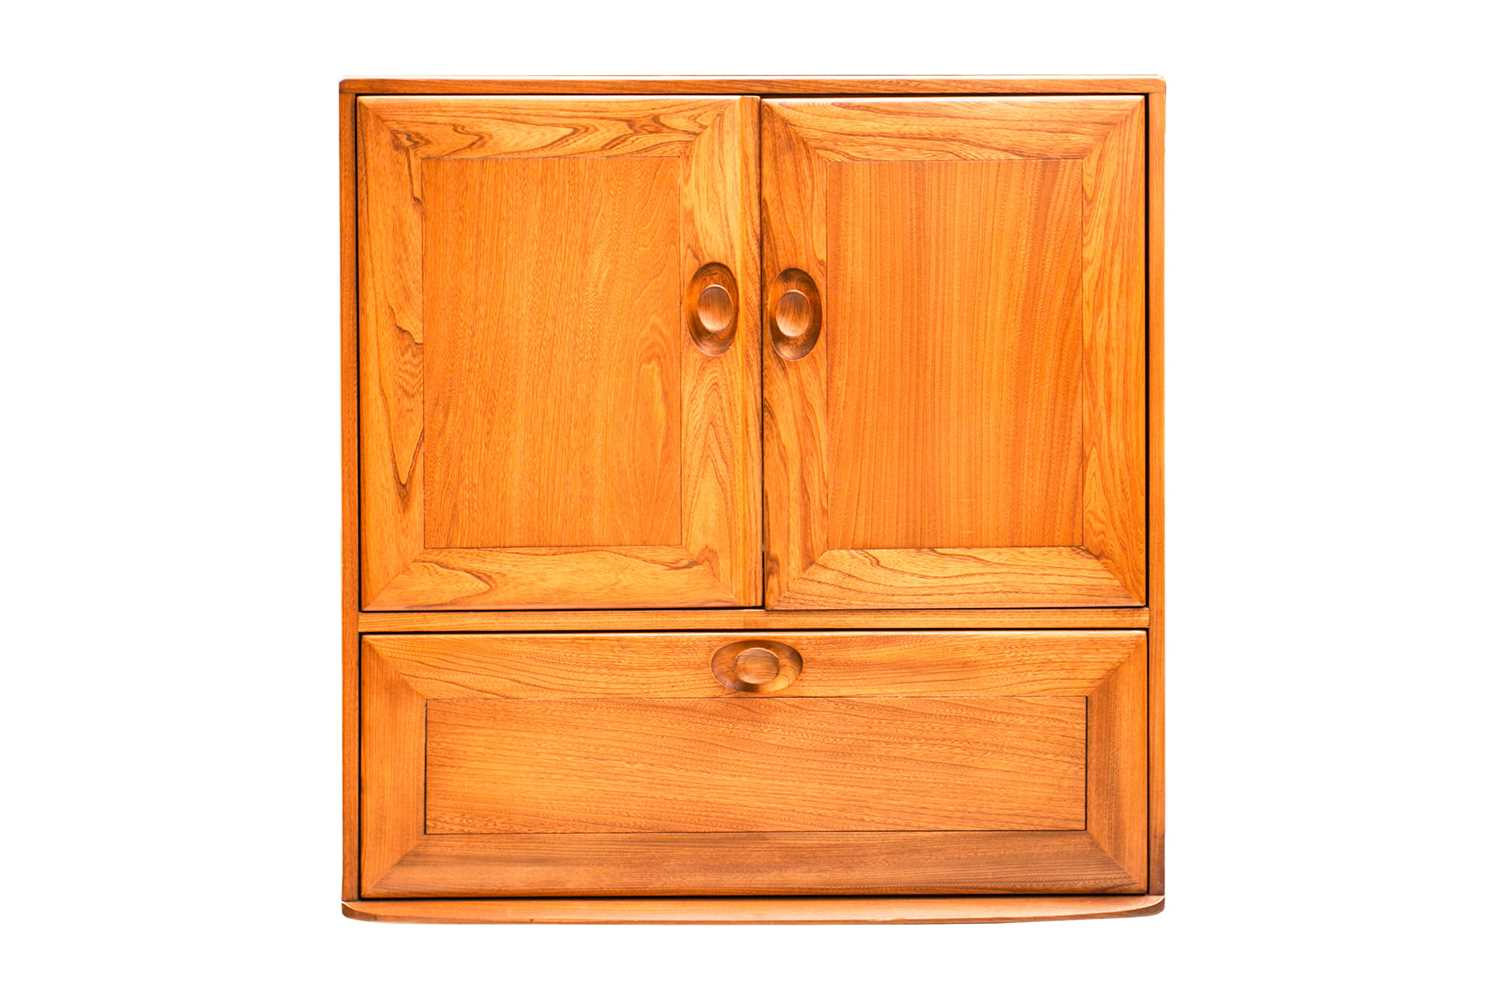 An Ercol golden dawn light elm free standing corner cupboard with an open upper section above a - Image 7 of 8